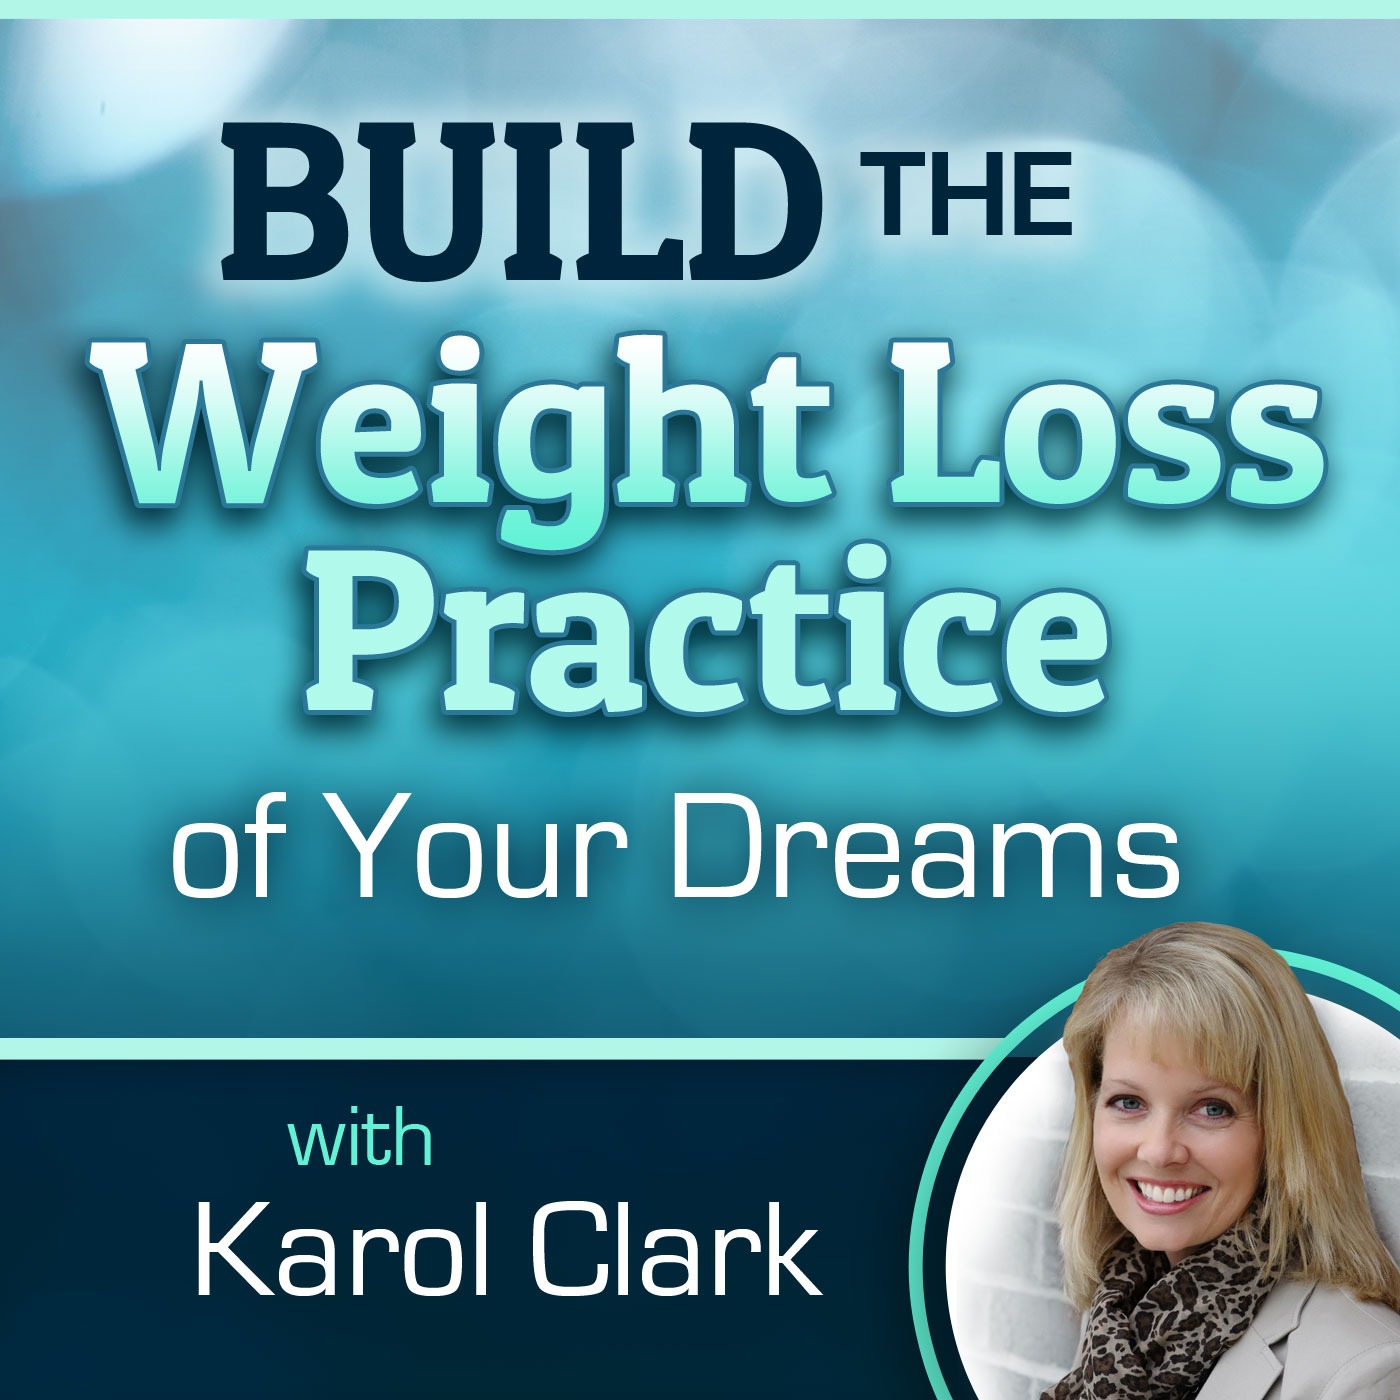 Build the Weight Loss Practice of your Dreams